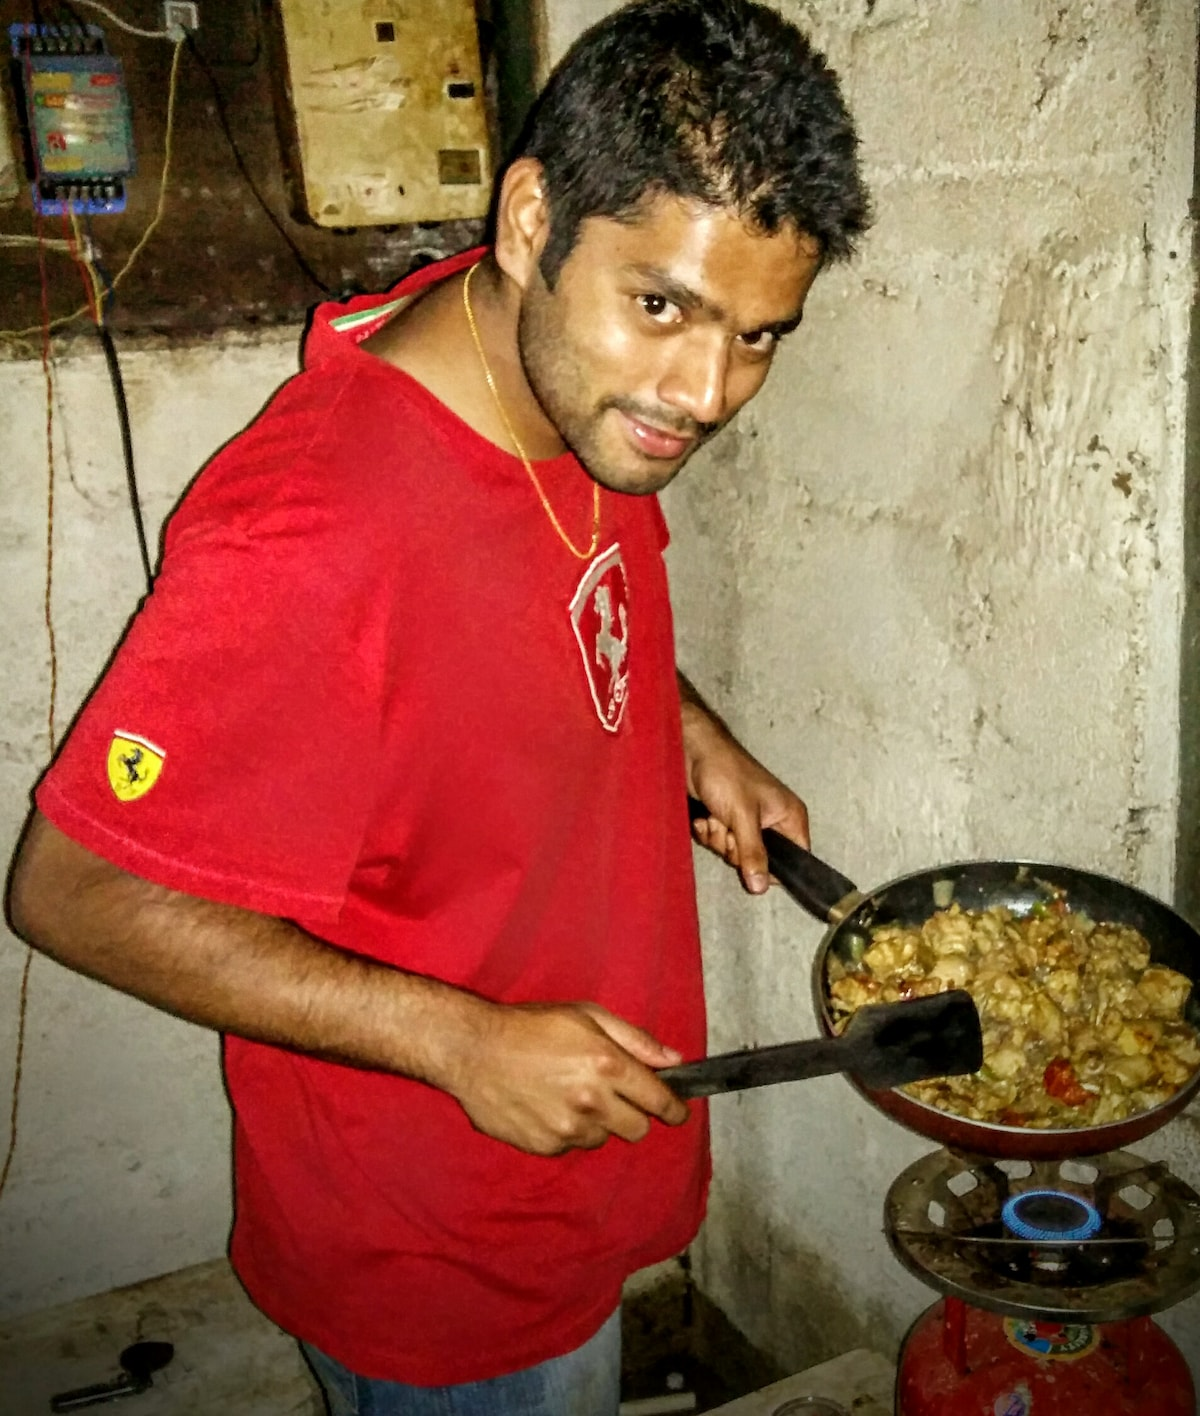 Prateek from Bengaluru